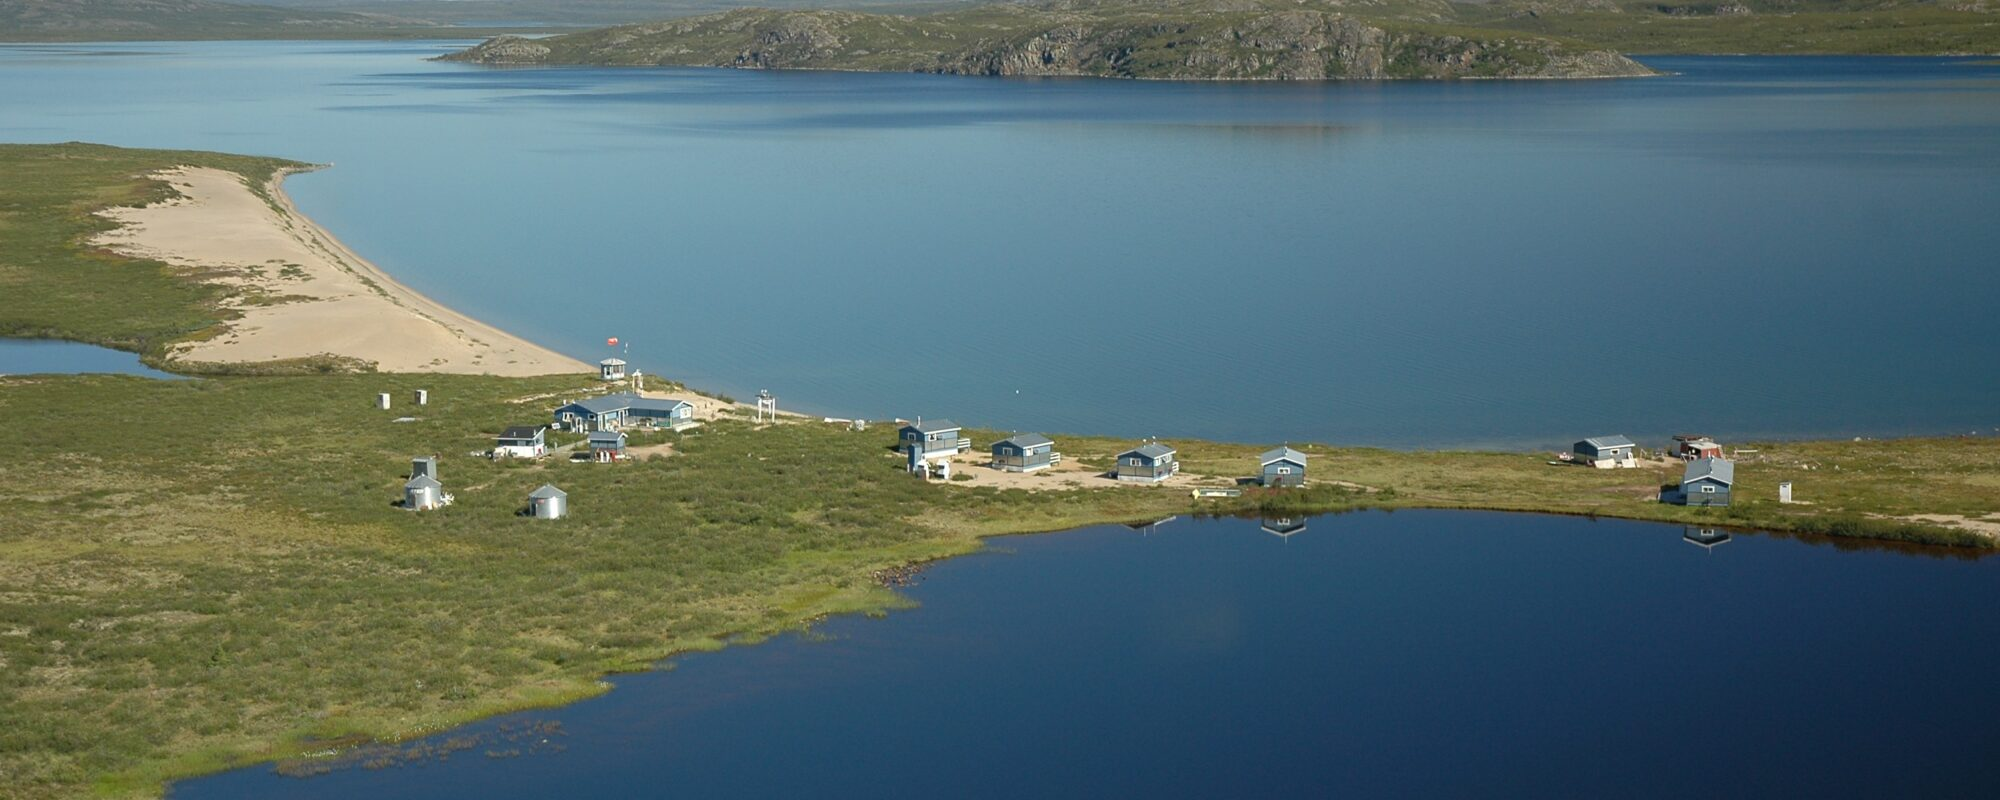 Peterson's Point Lake Lodge Canada Northwest Territories summer time